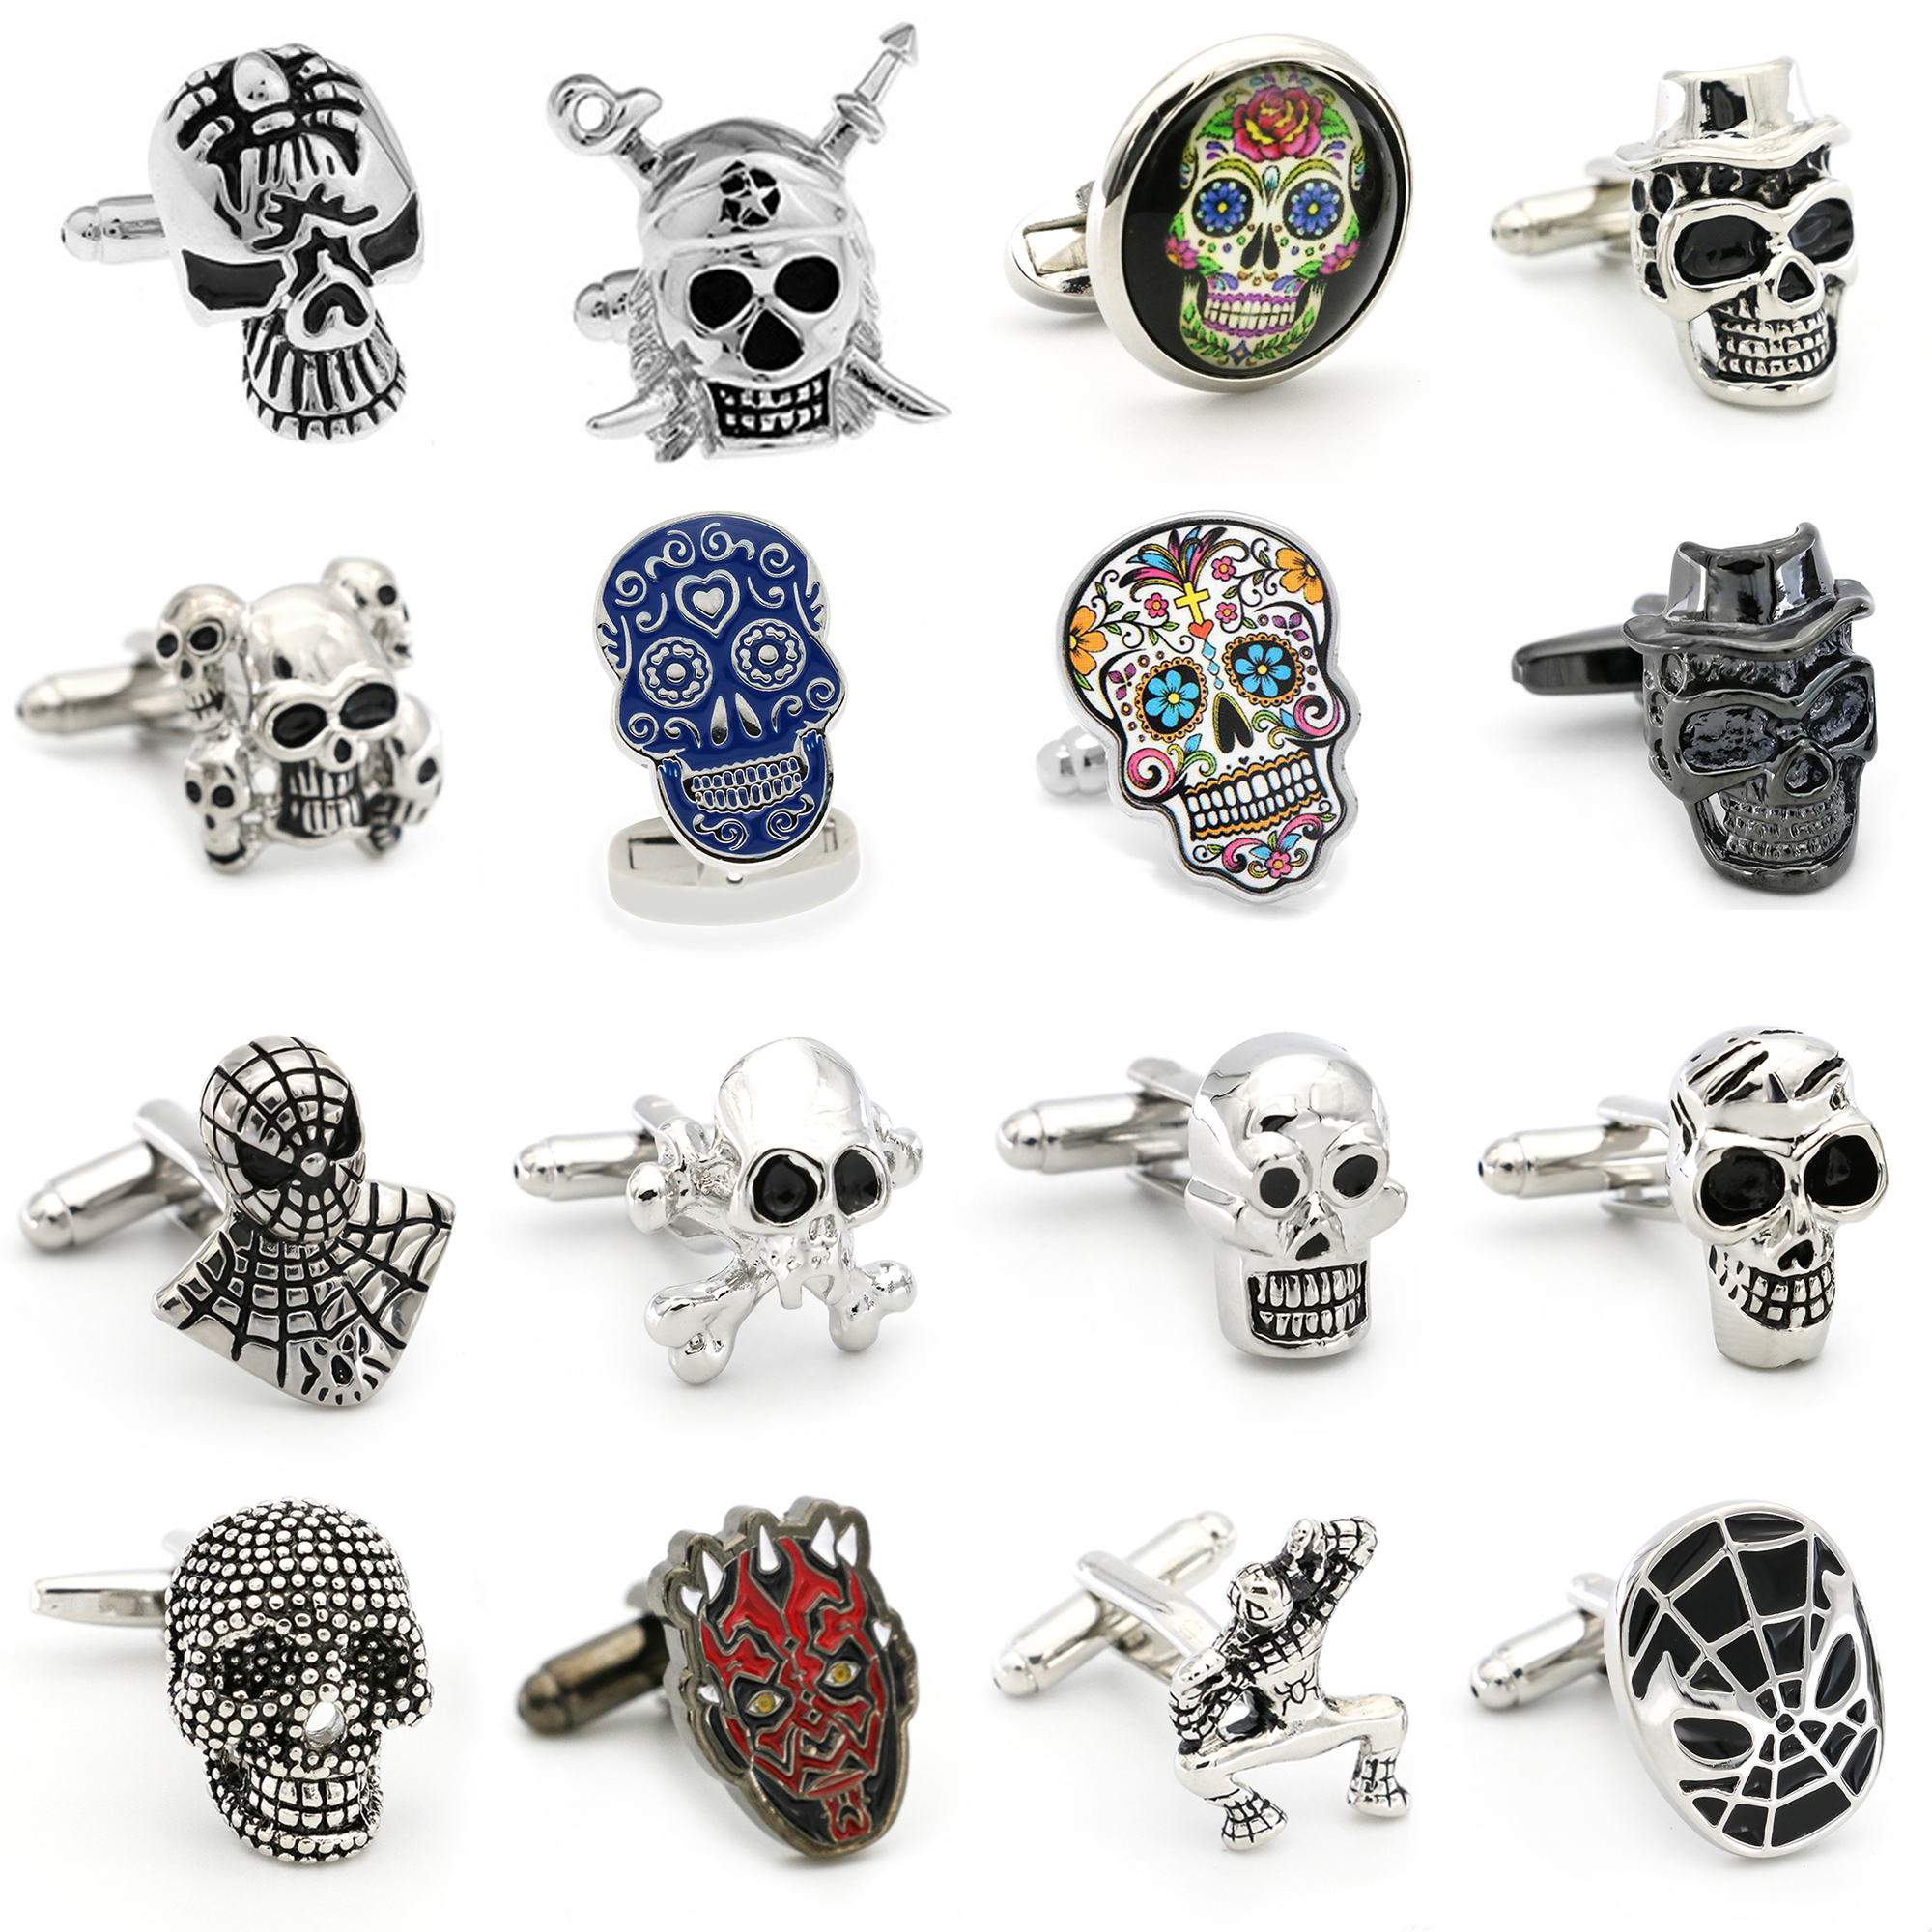 Free Shipping Skull Cufflinks 28 Vintage Skeleton Designs Men's Designer Cuff Links Wholesale&retail